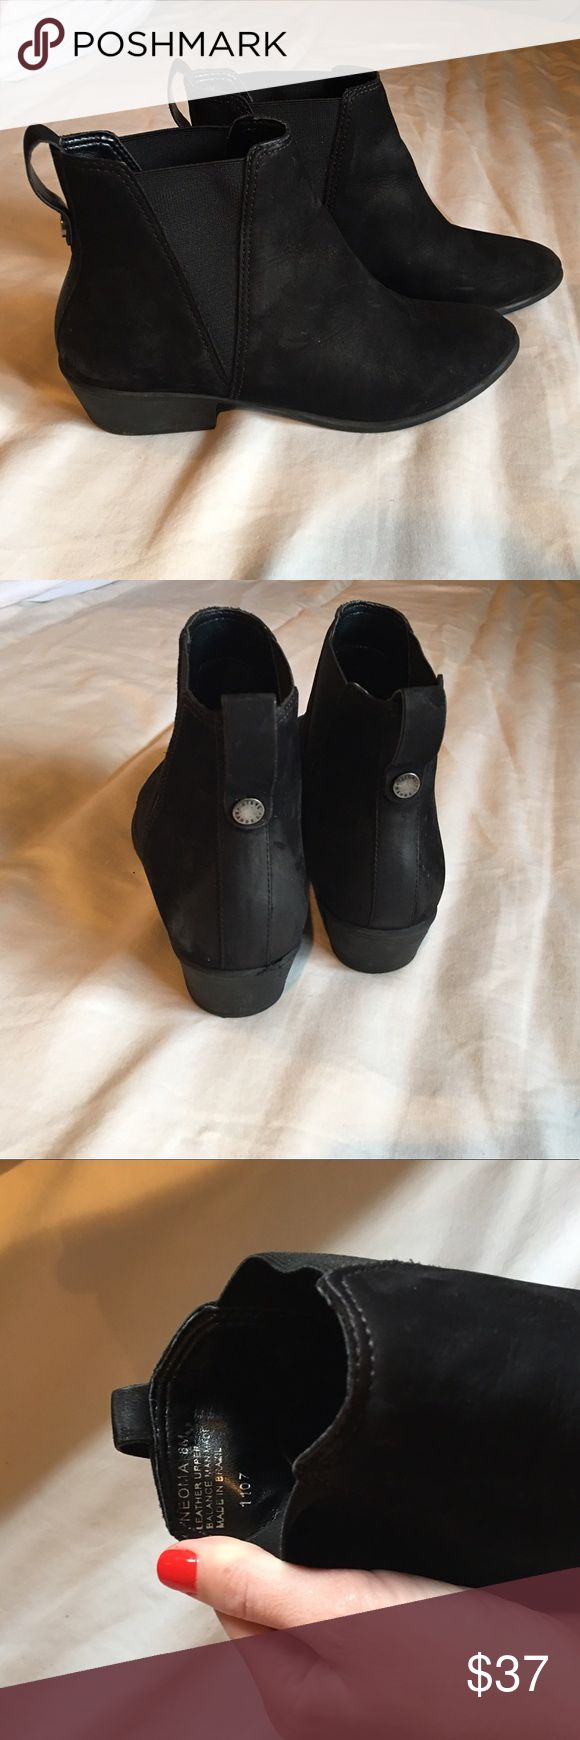 Steve Madden Neoma ankle bootie Super comfortable, worn a handful of times, black Steve Madden Neoma bootie, size 8 Steve Madden Shoes Ankle Boots & Booties